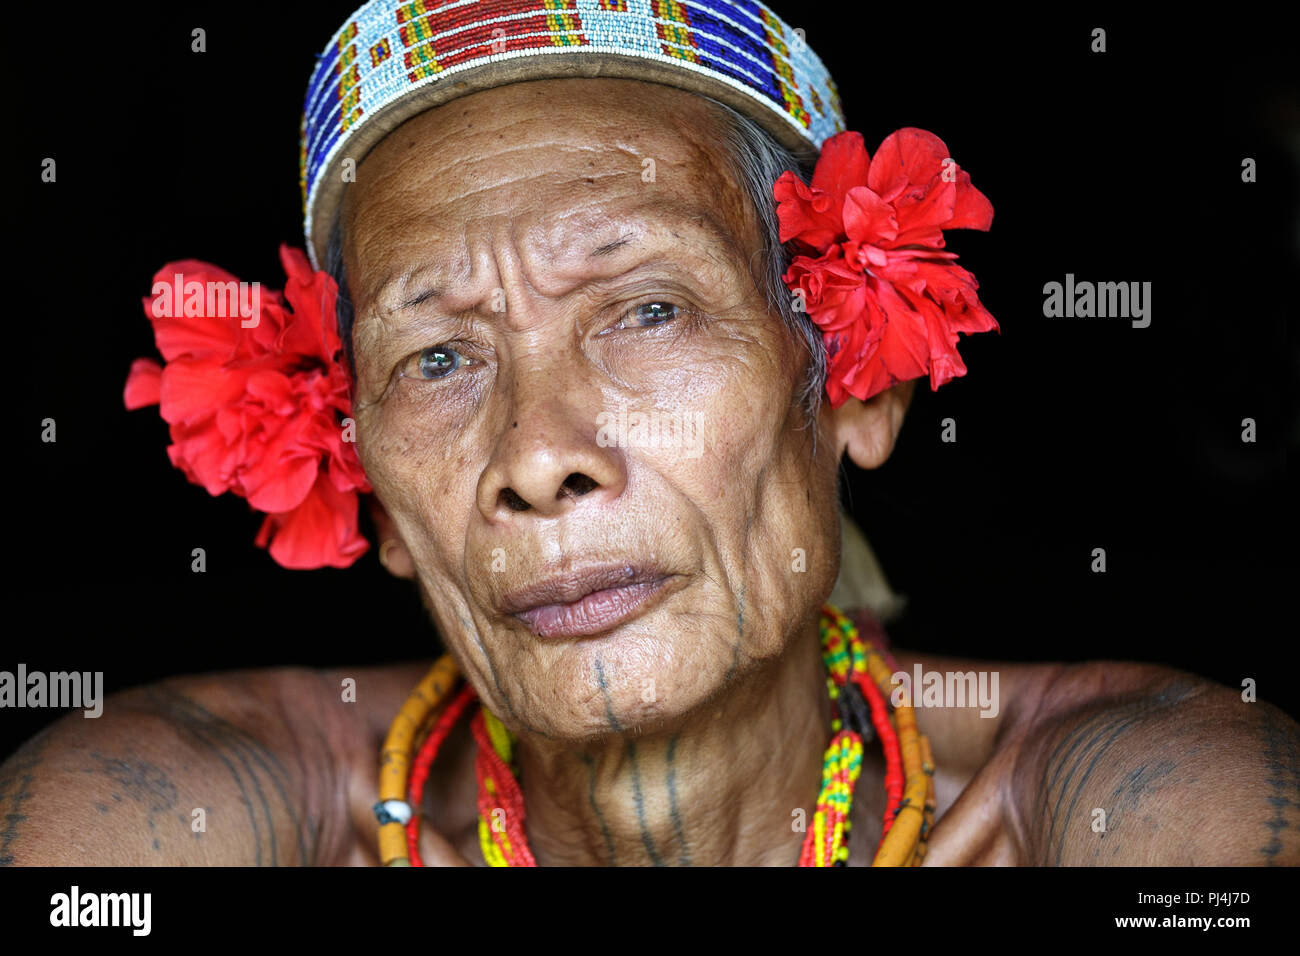 Portrait of old shaman of Mentawai people wearing red flowers on his head and tatoos, indigenous tribe, Siberut, sumatra, Indonesia - Stock Image